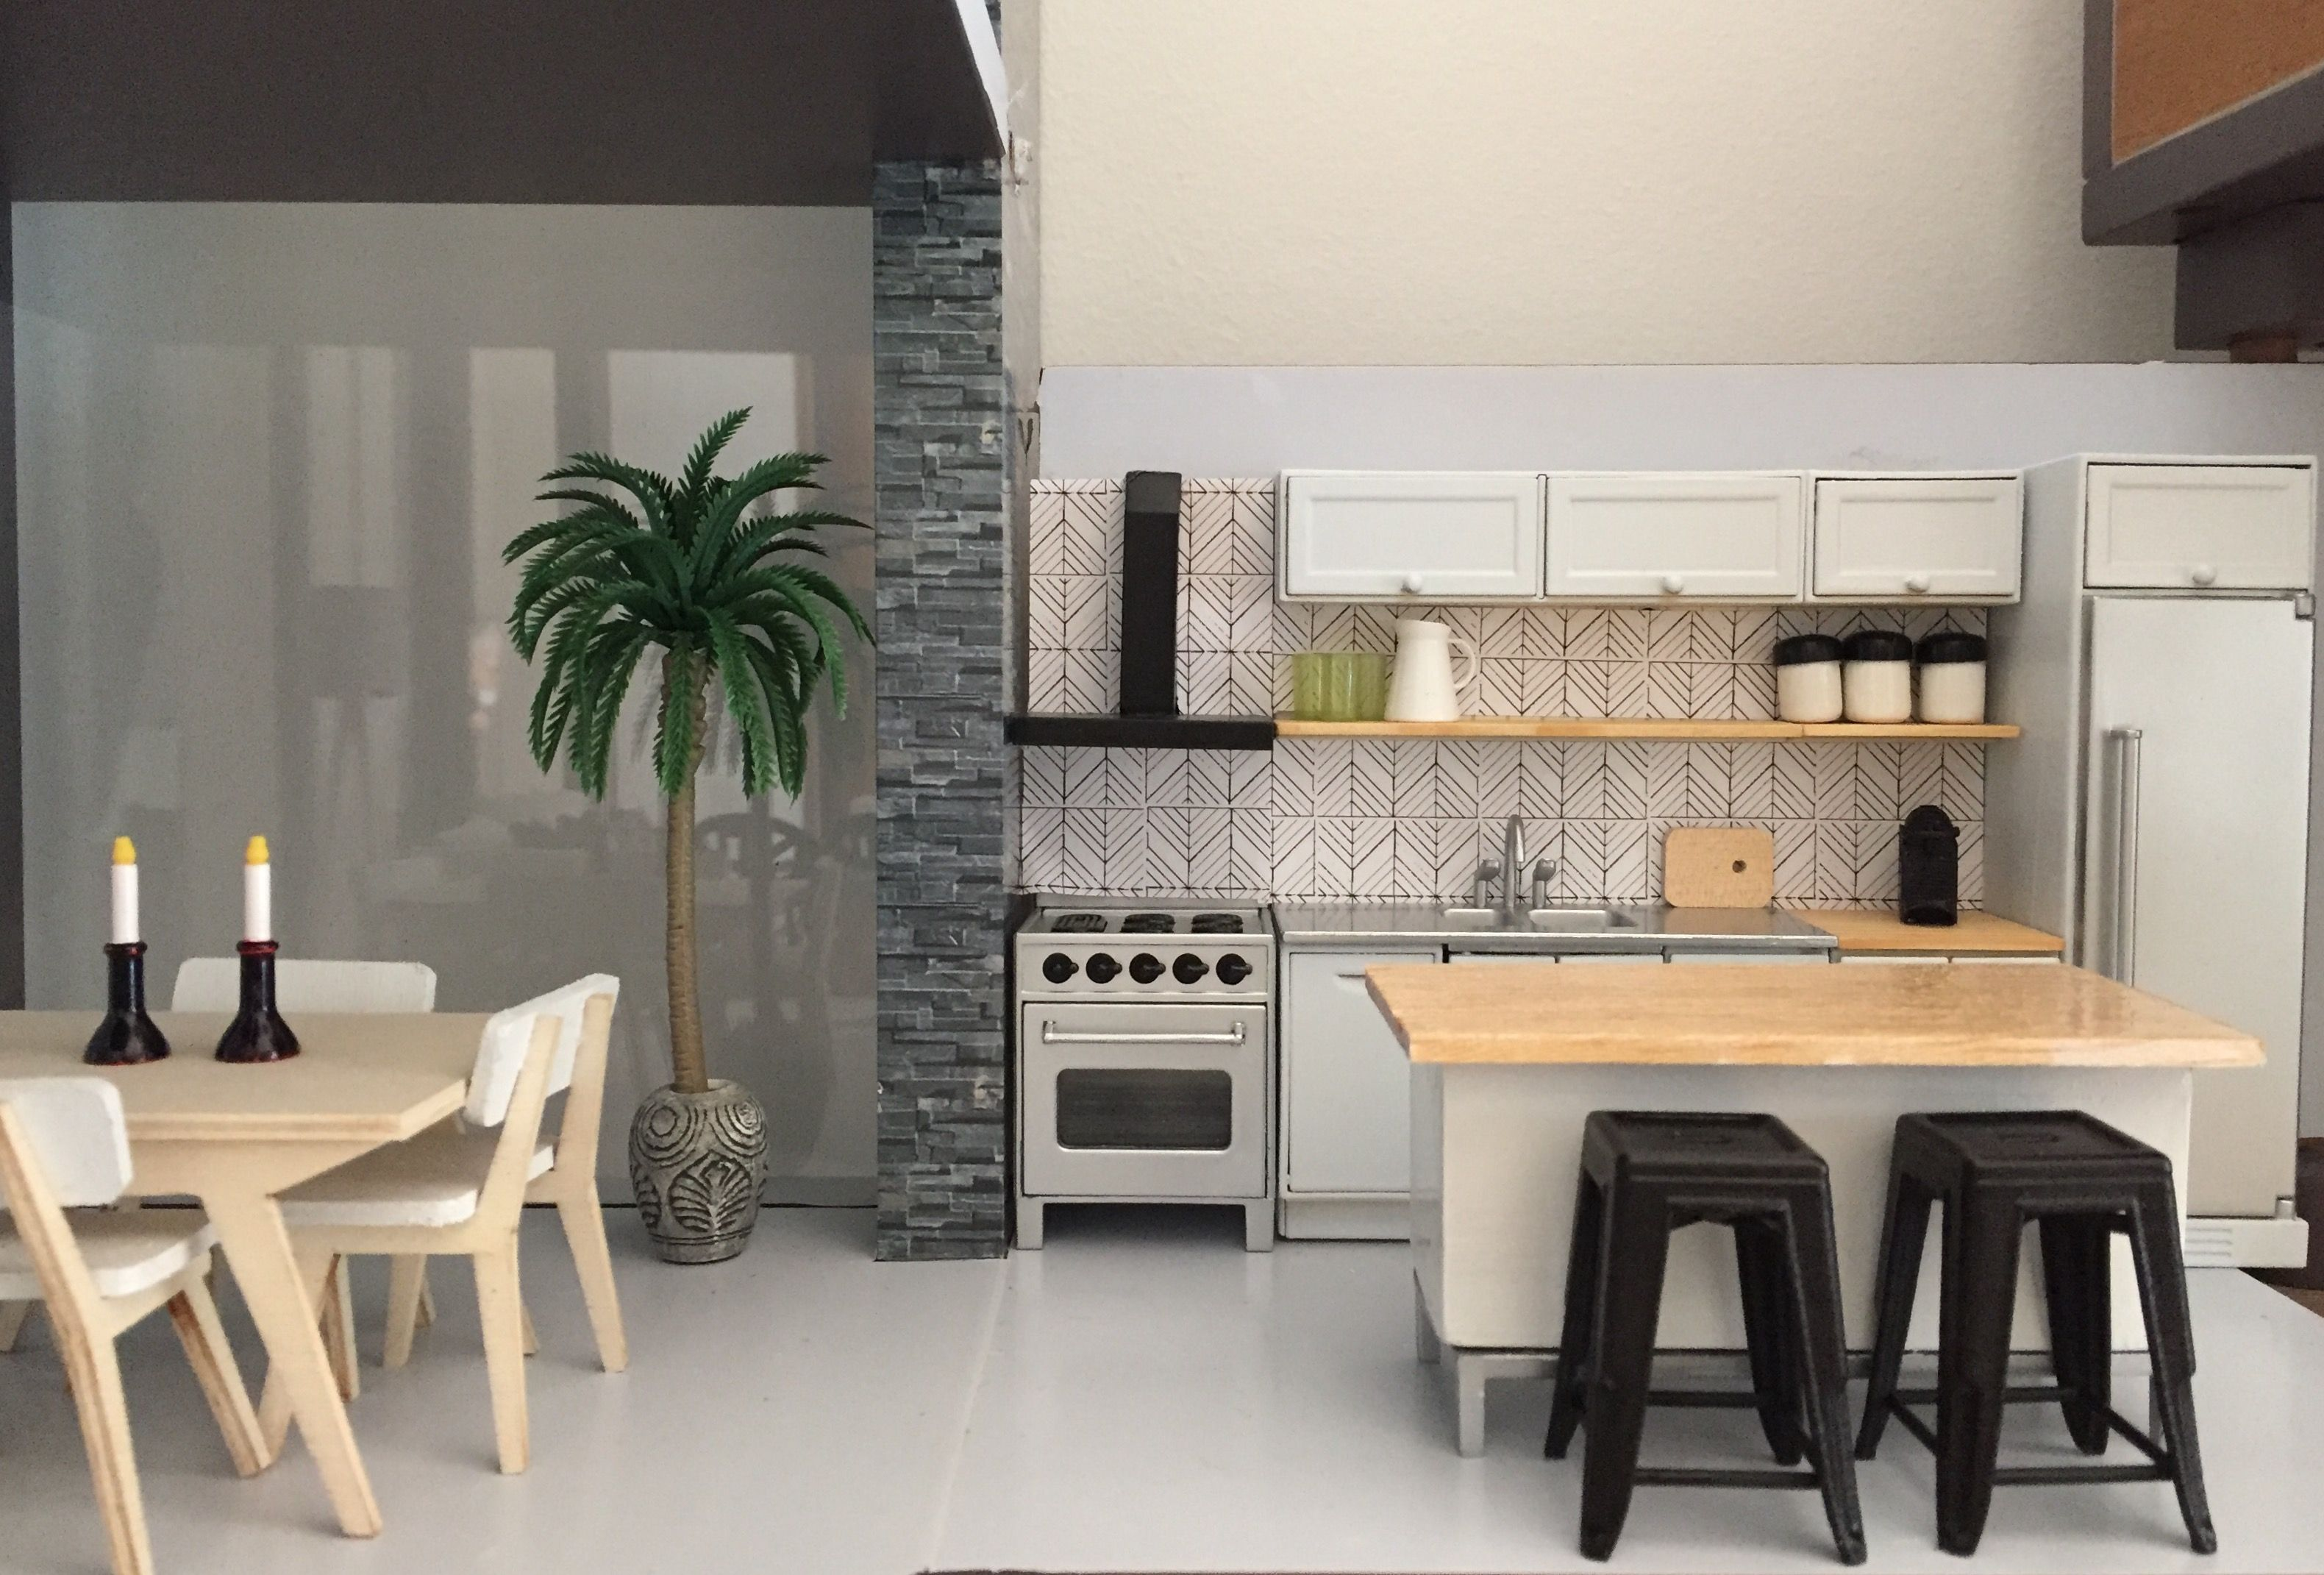 Puppenhaus Küche Modern Lundby Kitchen Renovated To Fit Into The Brinca Dada